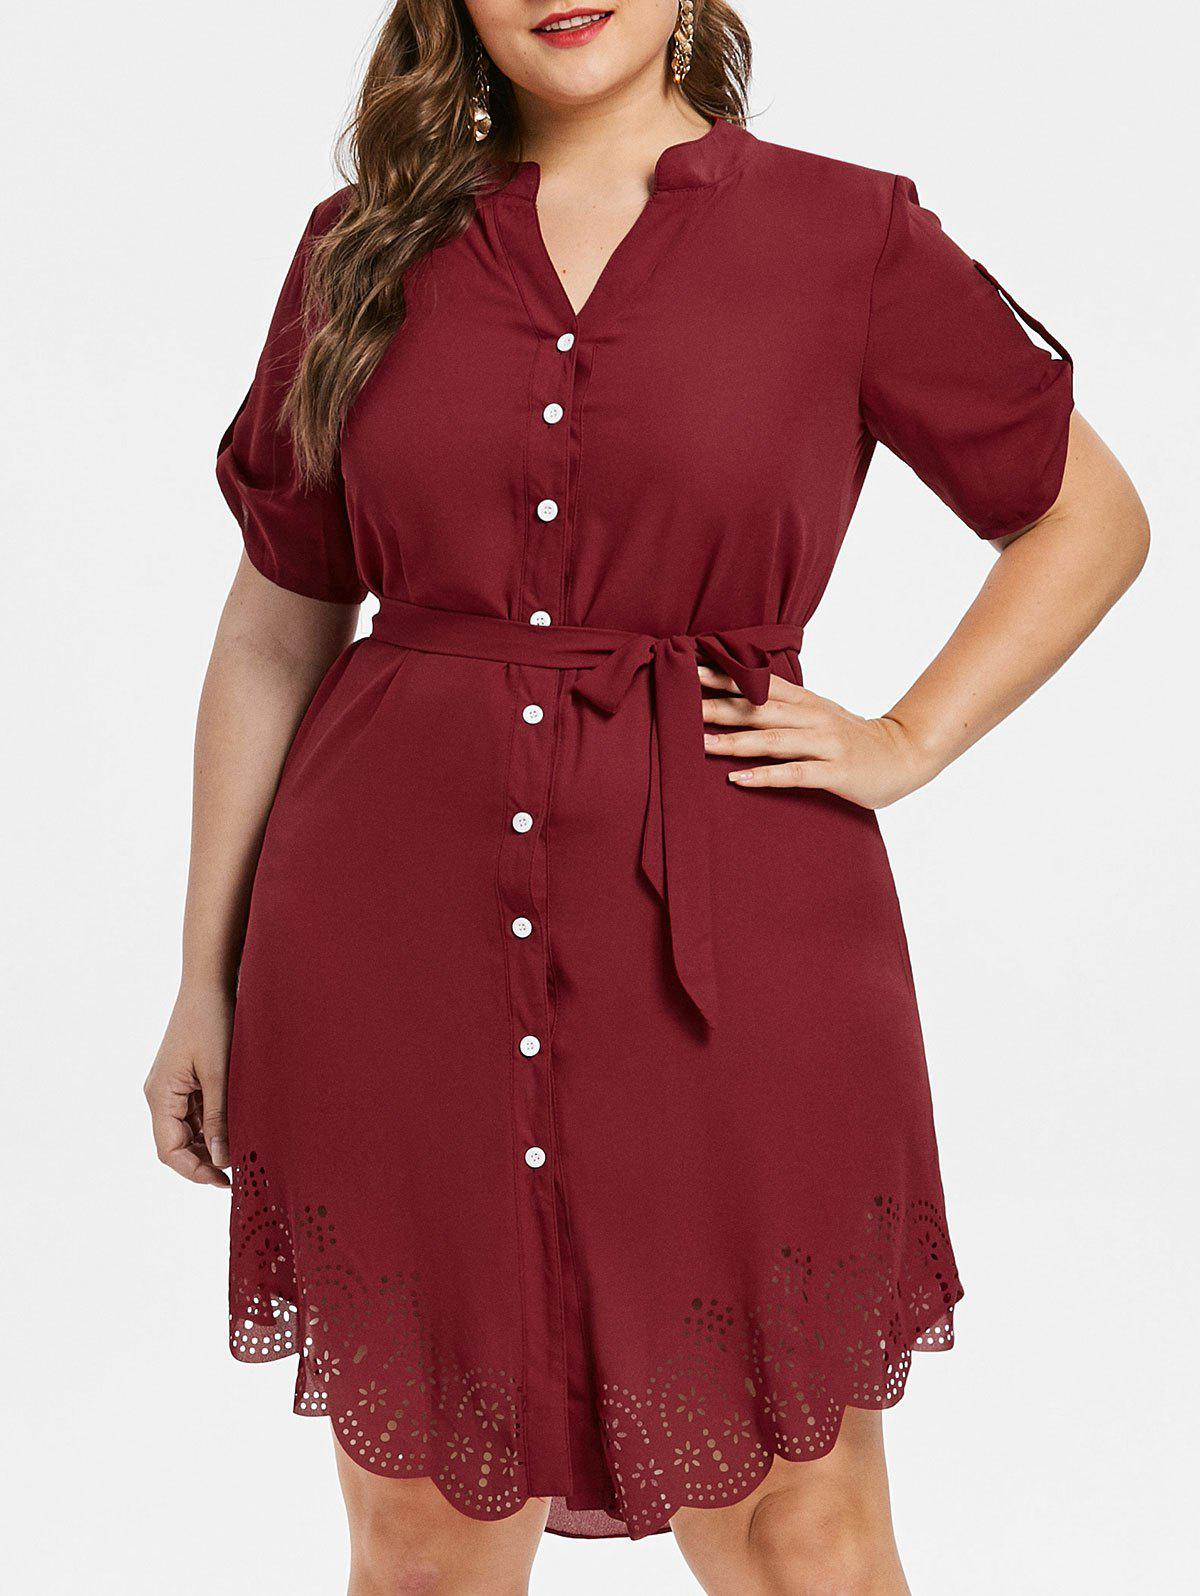 Plus Size Asymmetrical Shirt Dress - RED WINE 5X